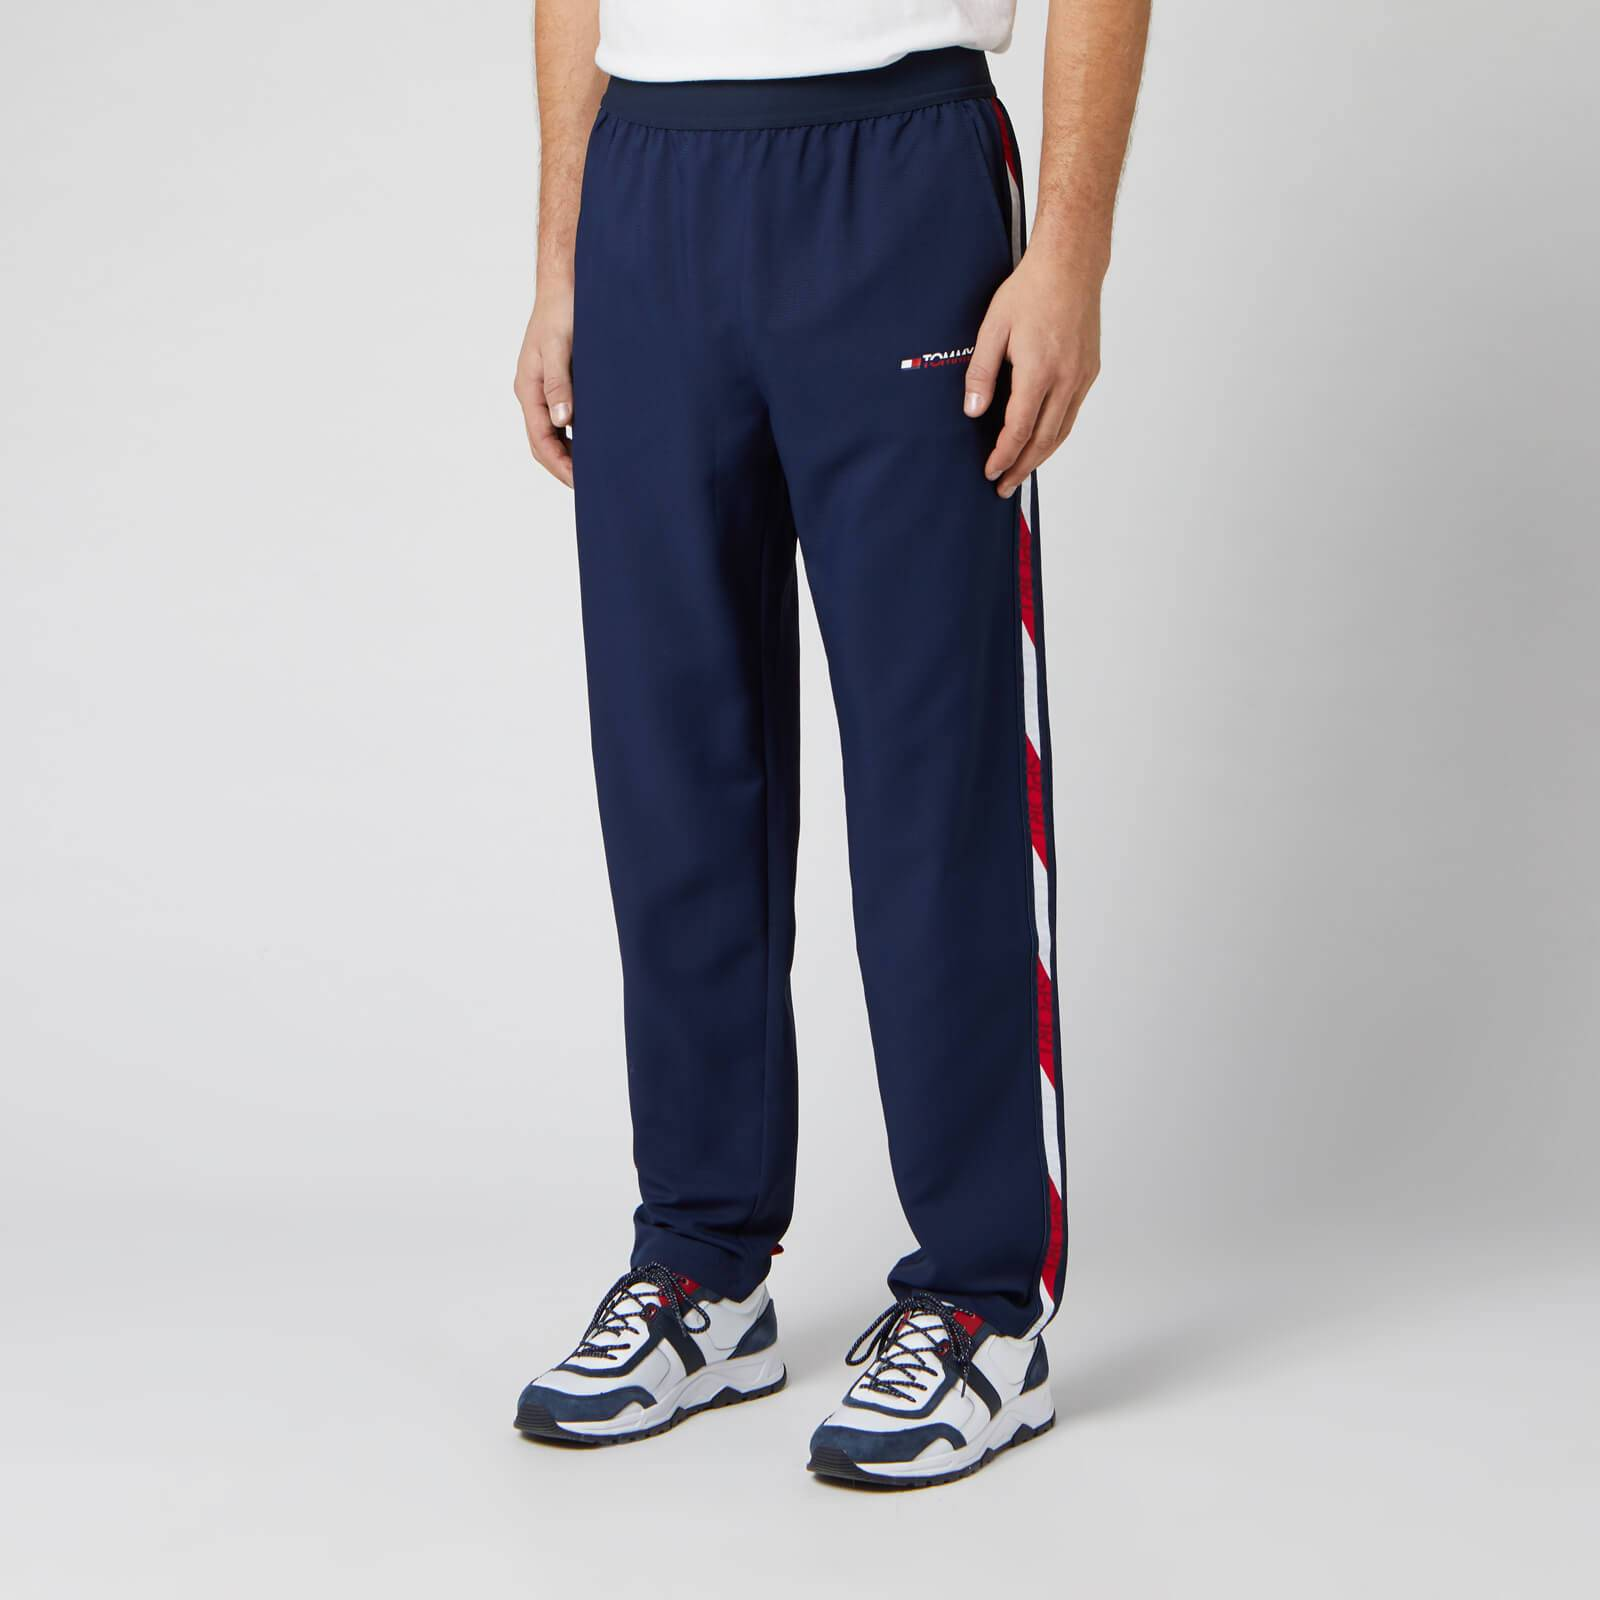 Tommy Hilfiger Sport Men's Woven Tape Pants - Sport Navy - L